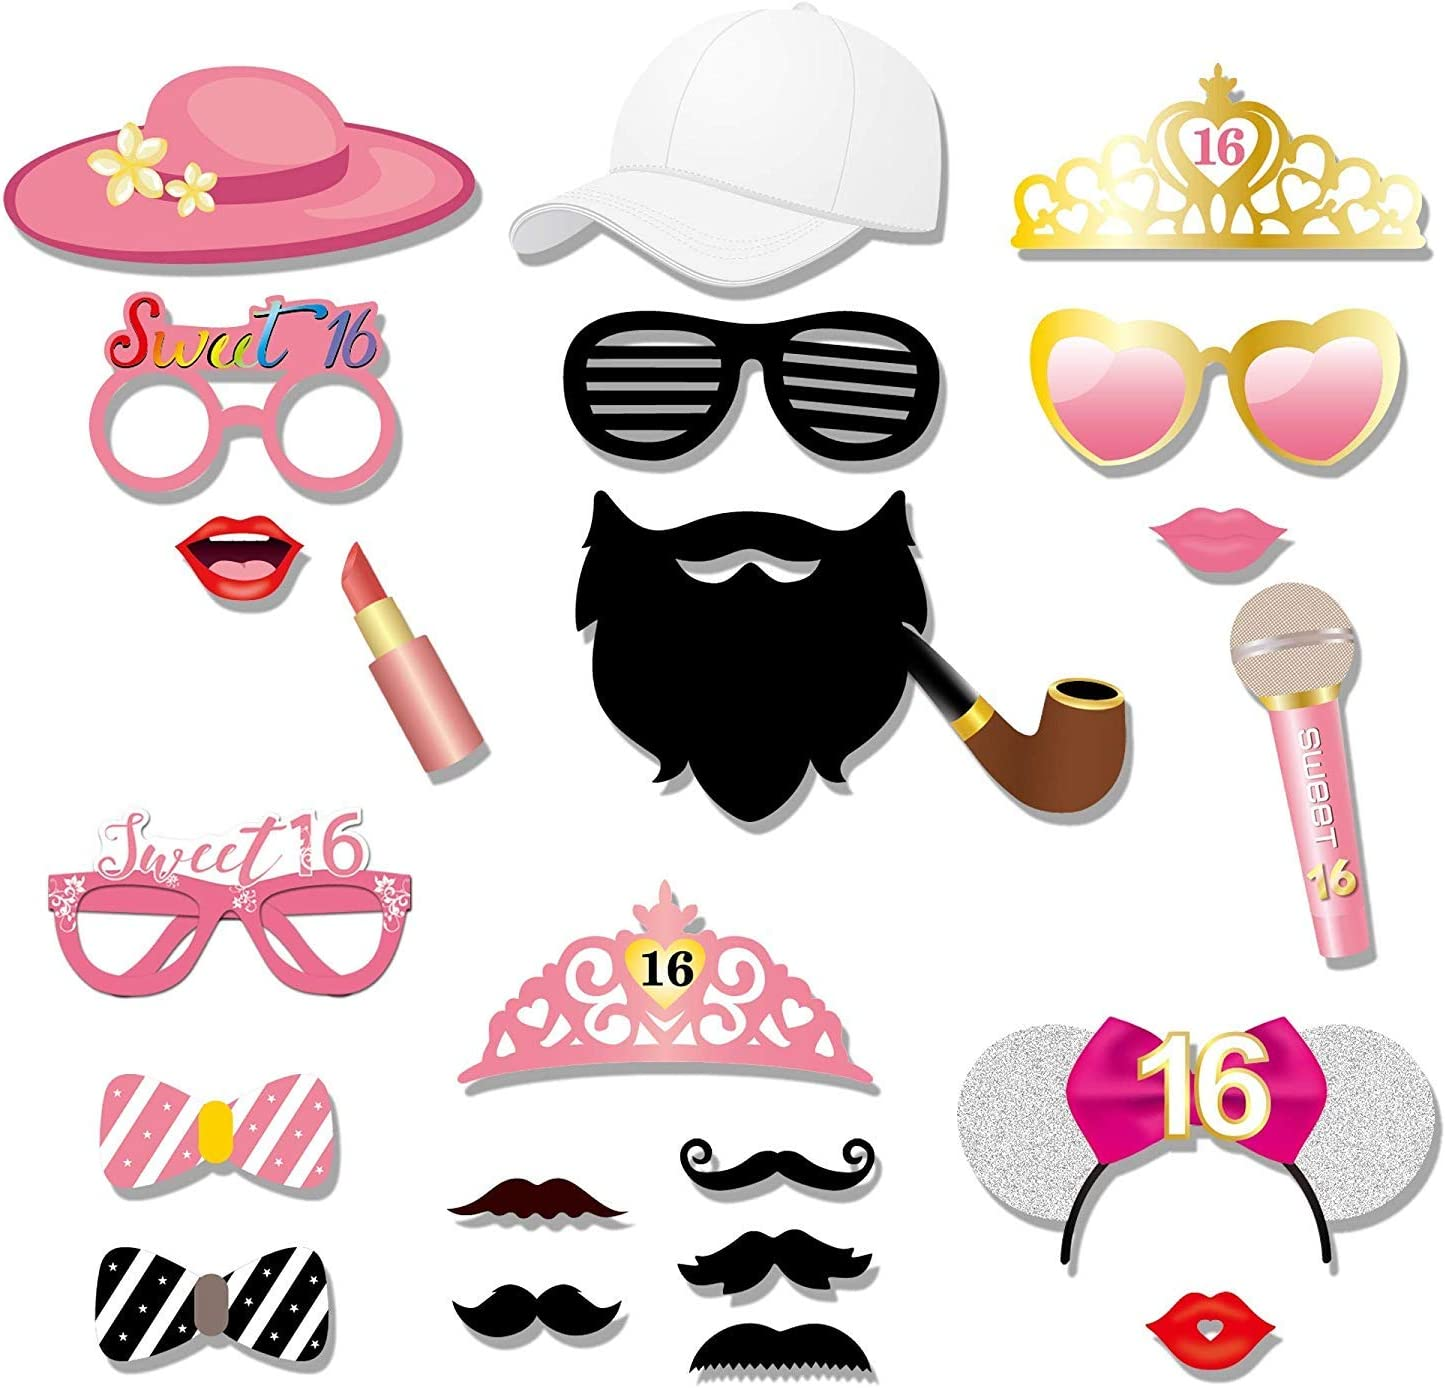 ,Funny Sweet Sixteen Birthday Party Photo Props for Girls,Pink Gold Decoration for 16th Birthday Party Favors Supplies Sweet 16th Birthday Photo Booth Props 44Pcs